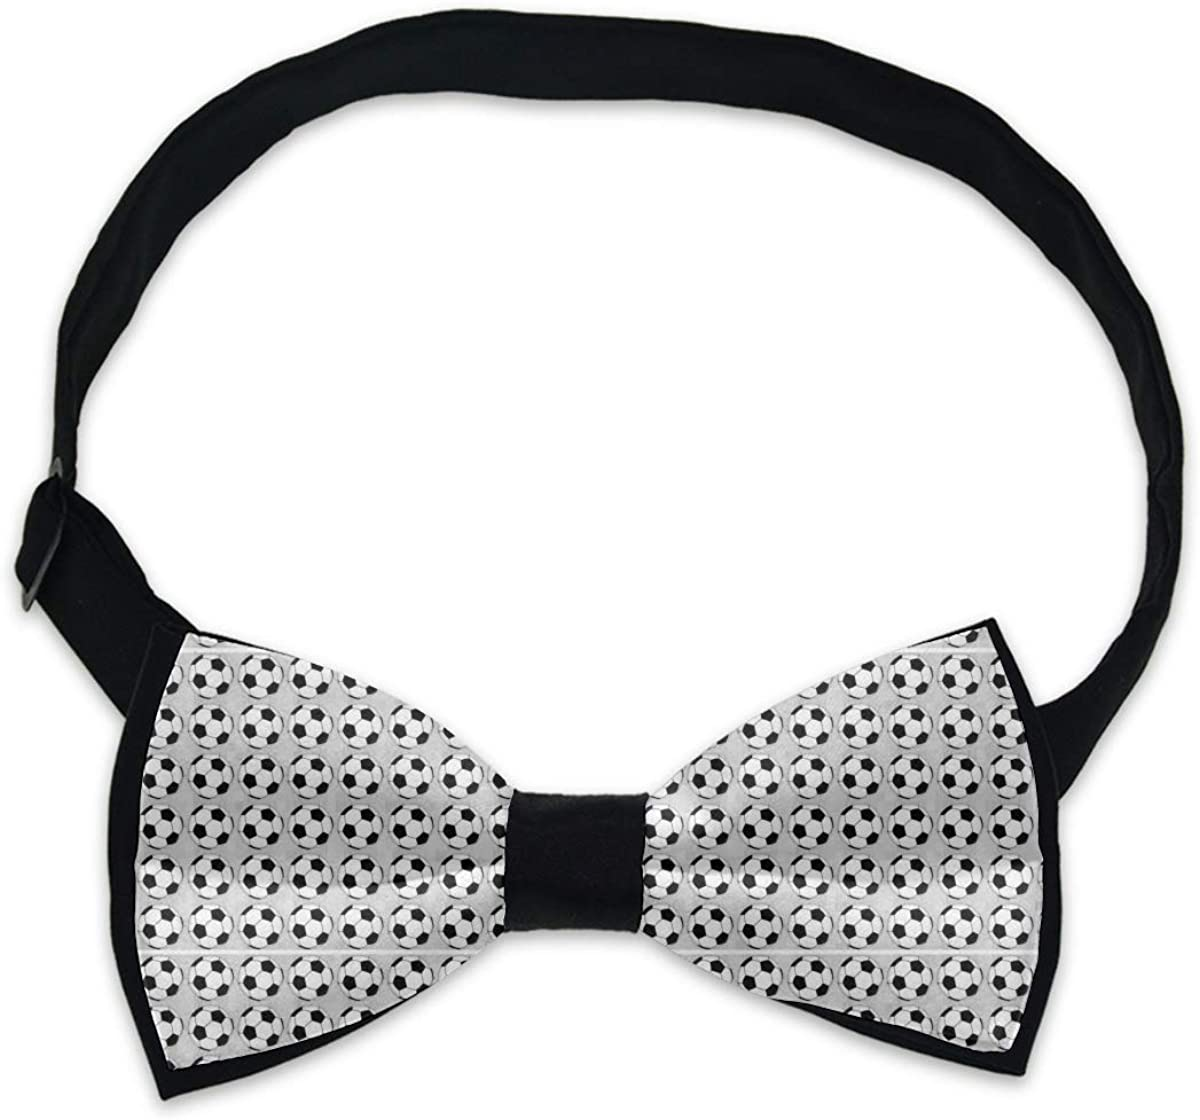 Adjustable Bowties Necktie for Business Wedding Party Gift, Holiday Party